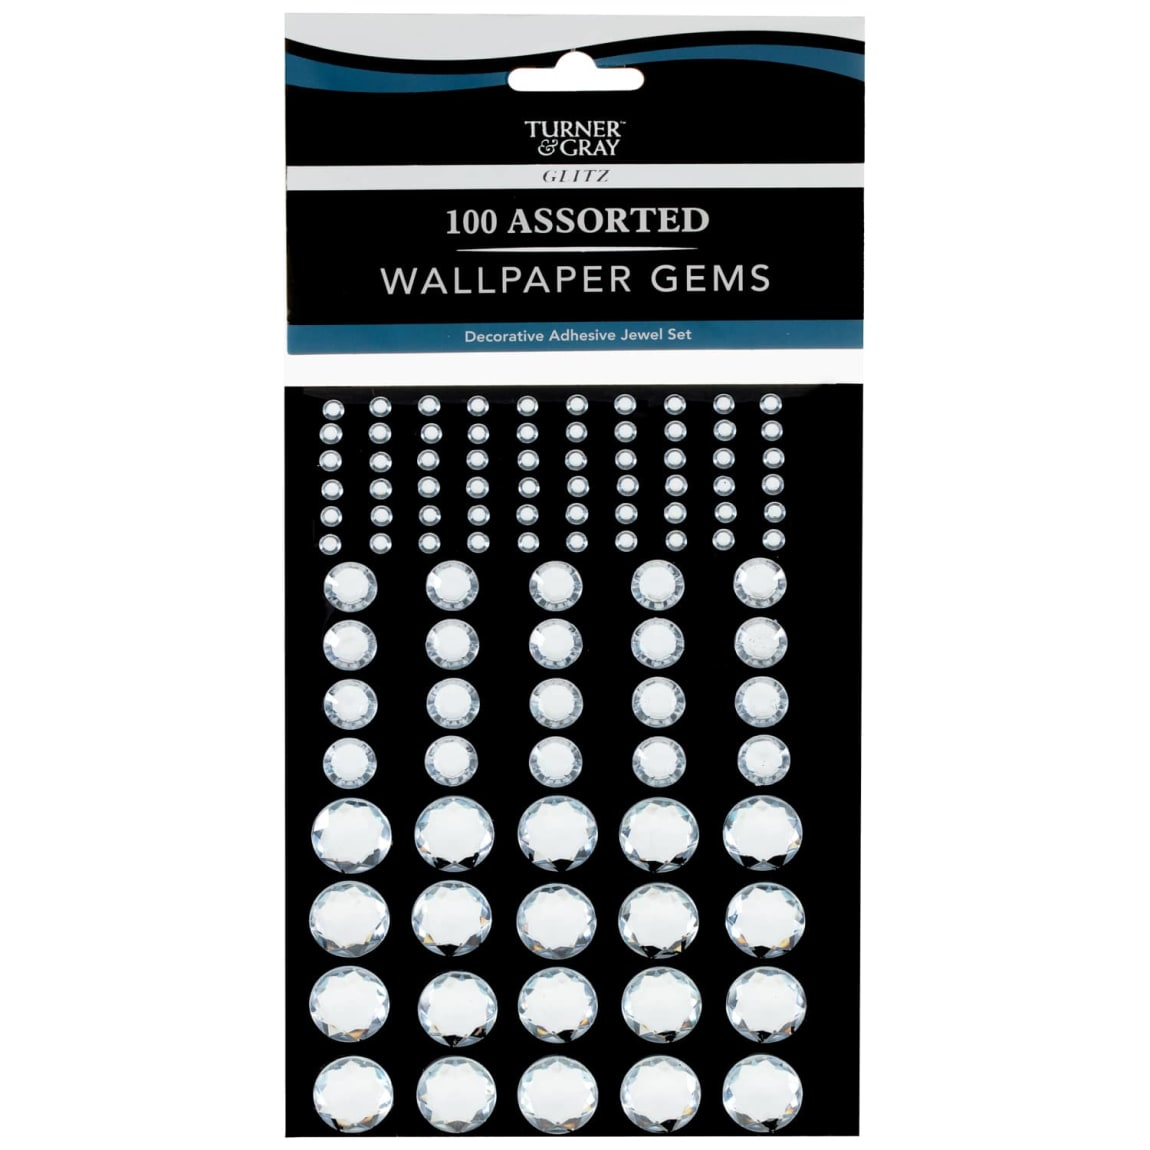 Turner & Gray Assorted Wallpaper Gems 100pk